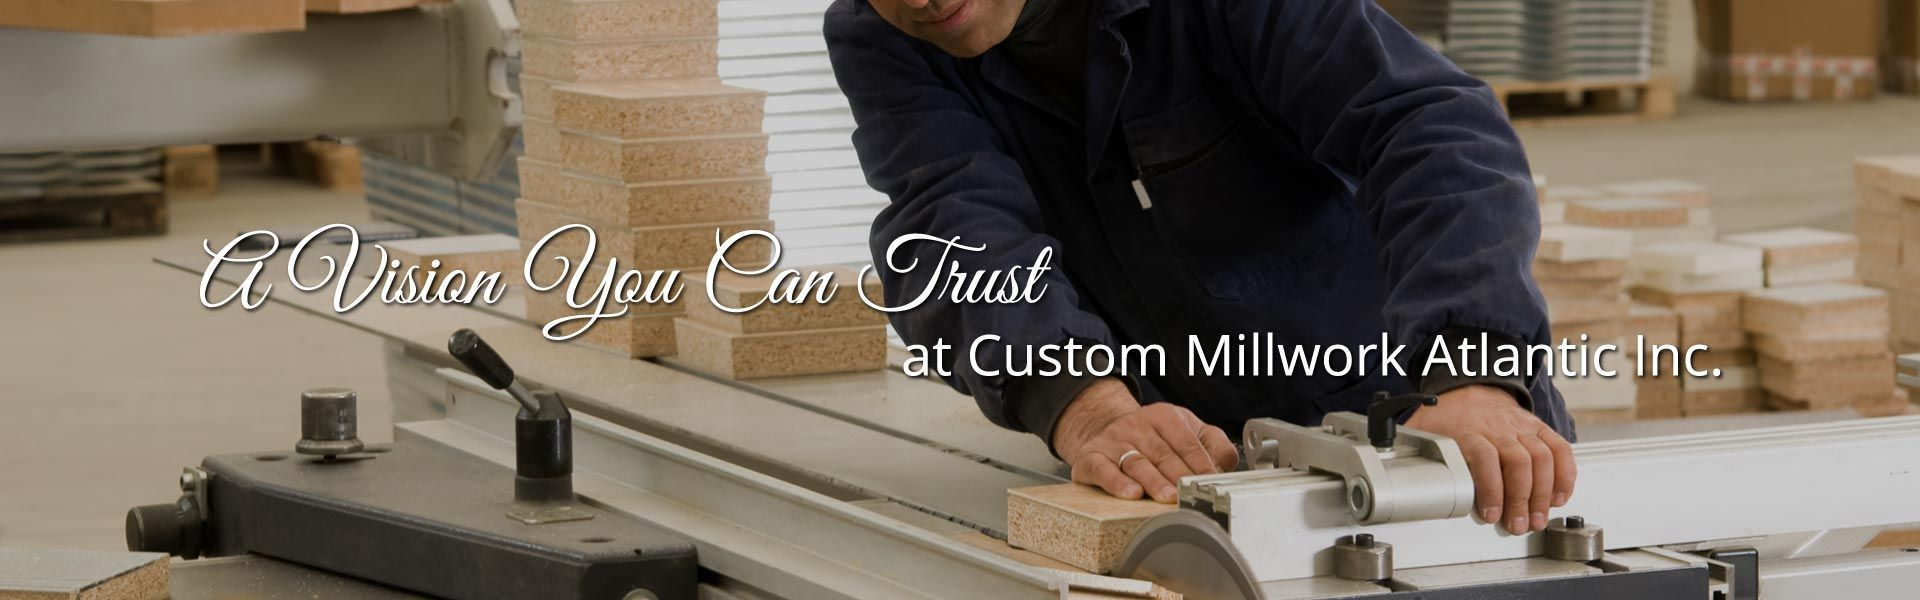 A Vision You Can Trust at Custom Millwork Atlantic Inc. | Man sawing wood